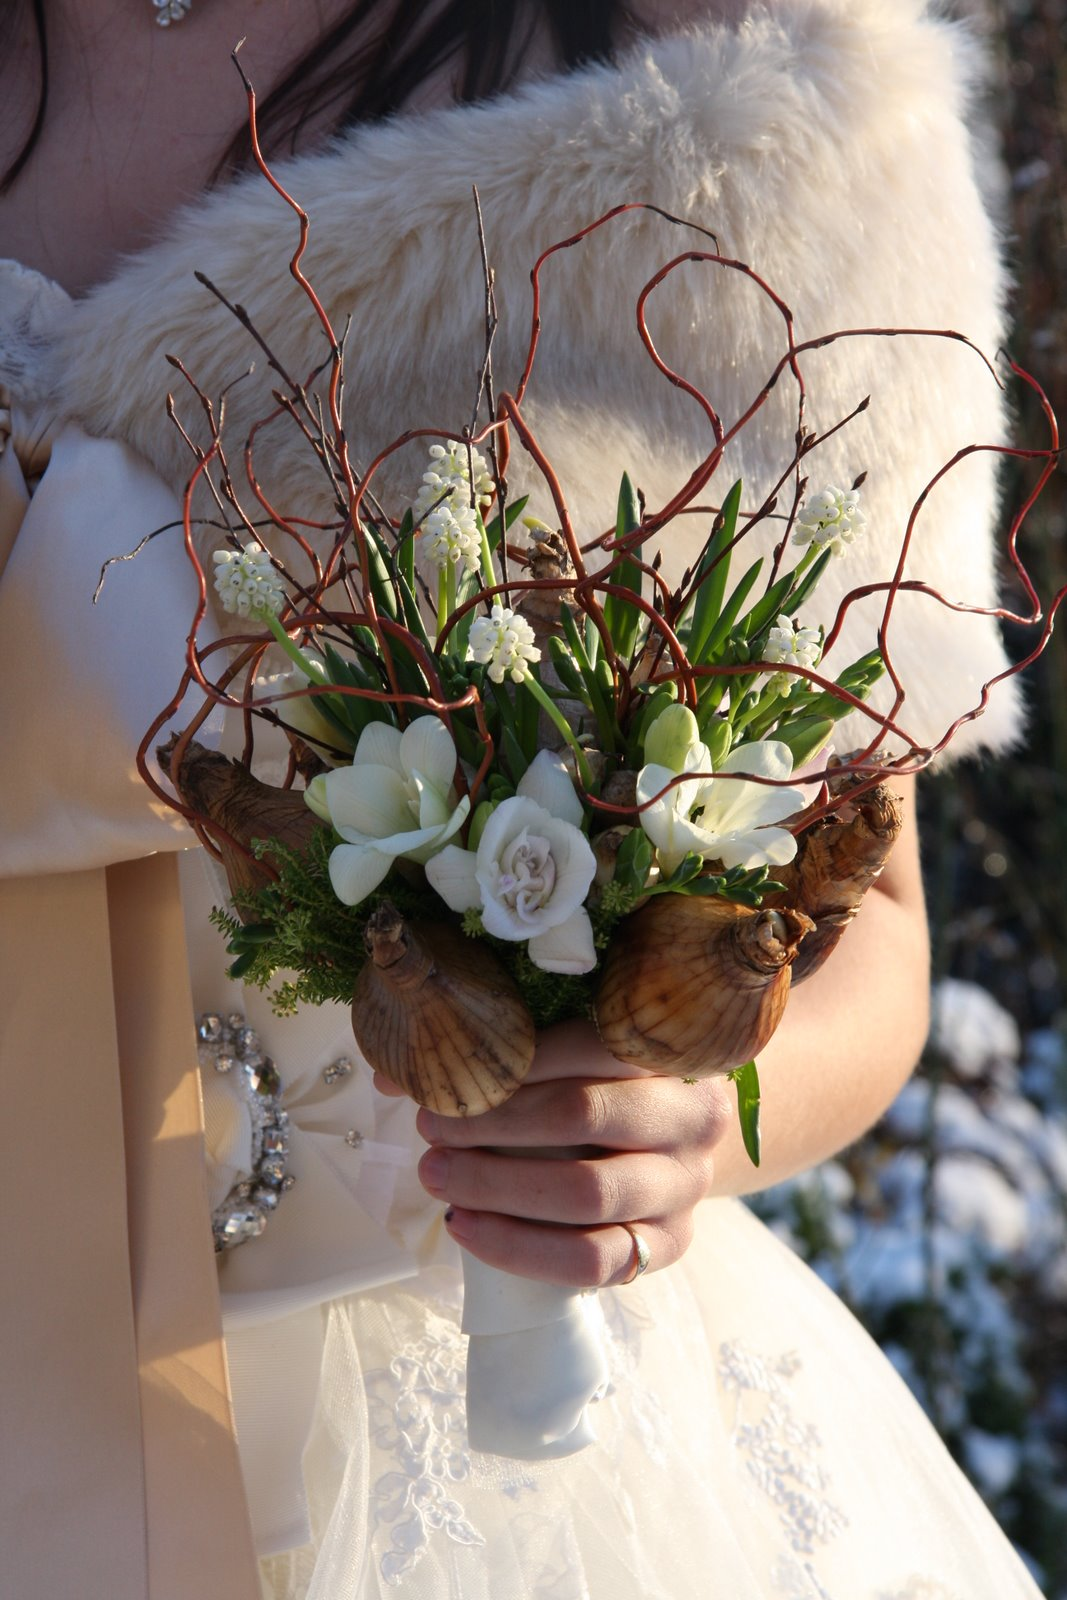 The Flower Magician: Spring Bulb Rustic Wedding Bouquet